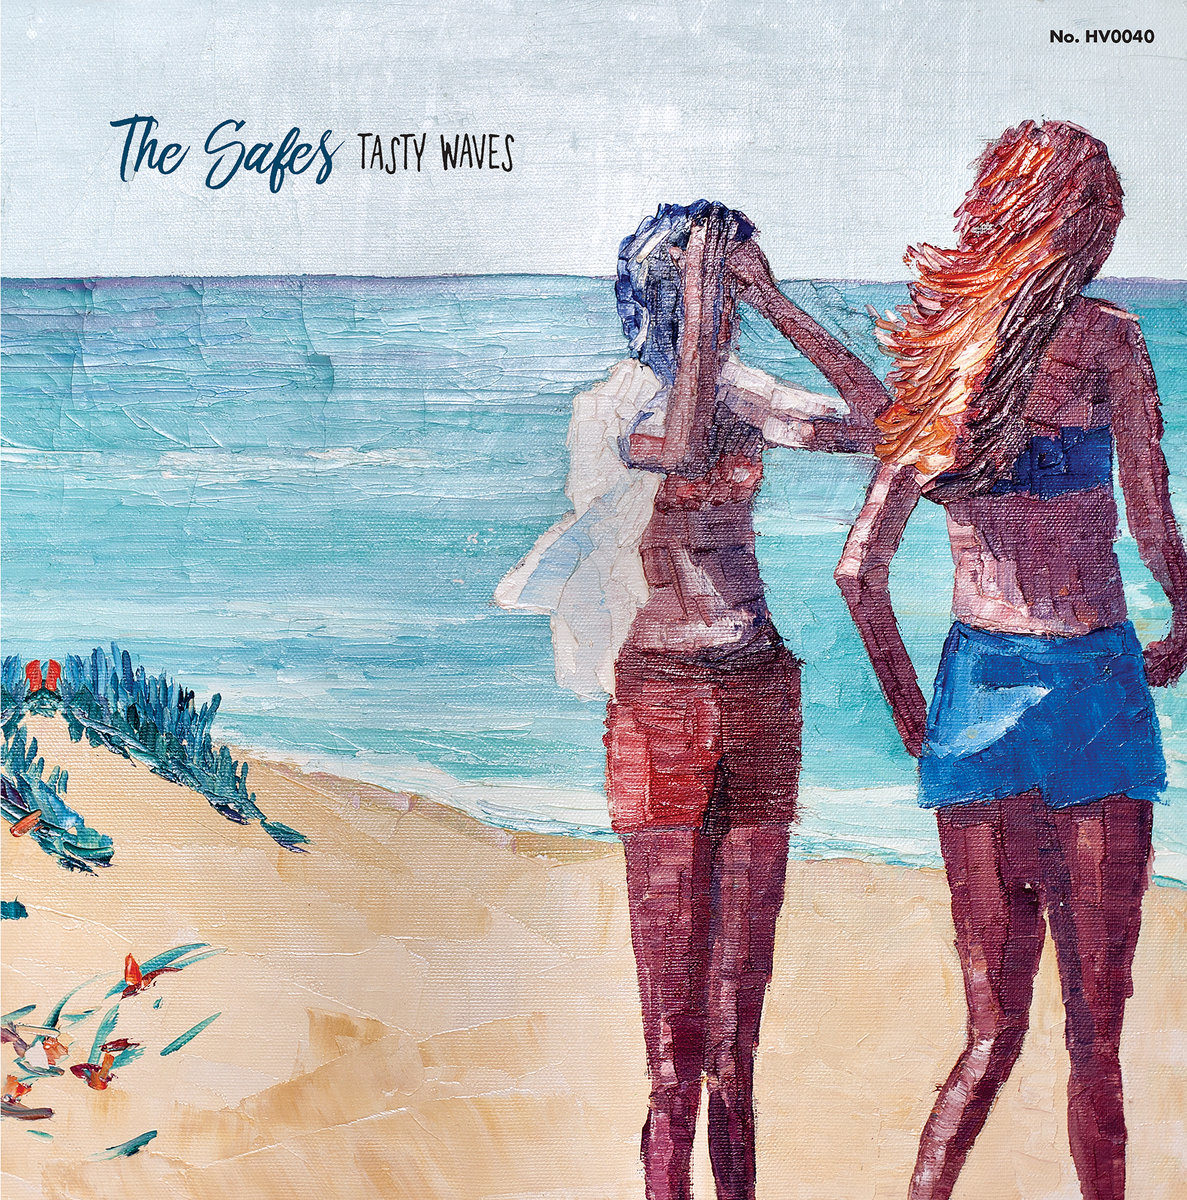 The Safes | Tasty Waves | 3hive.com